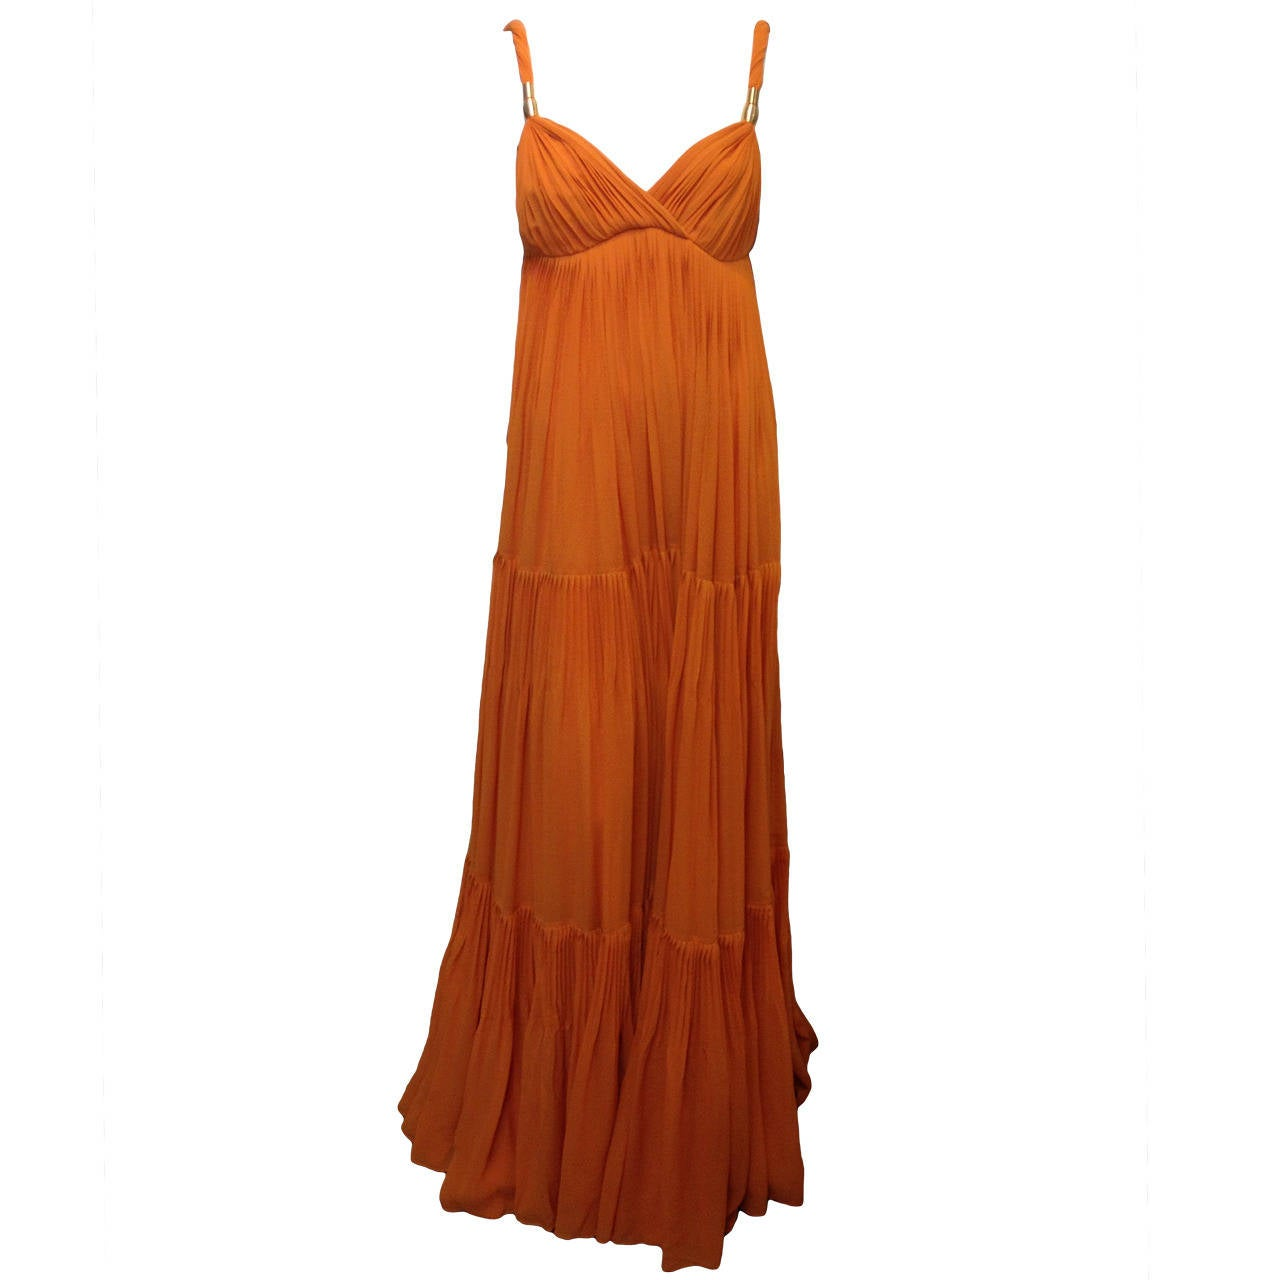 Gucci Orange Chiffon Tiered Gown 1